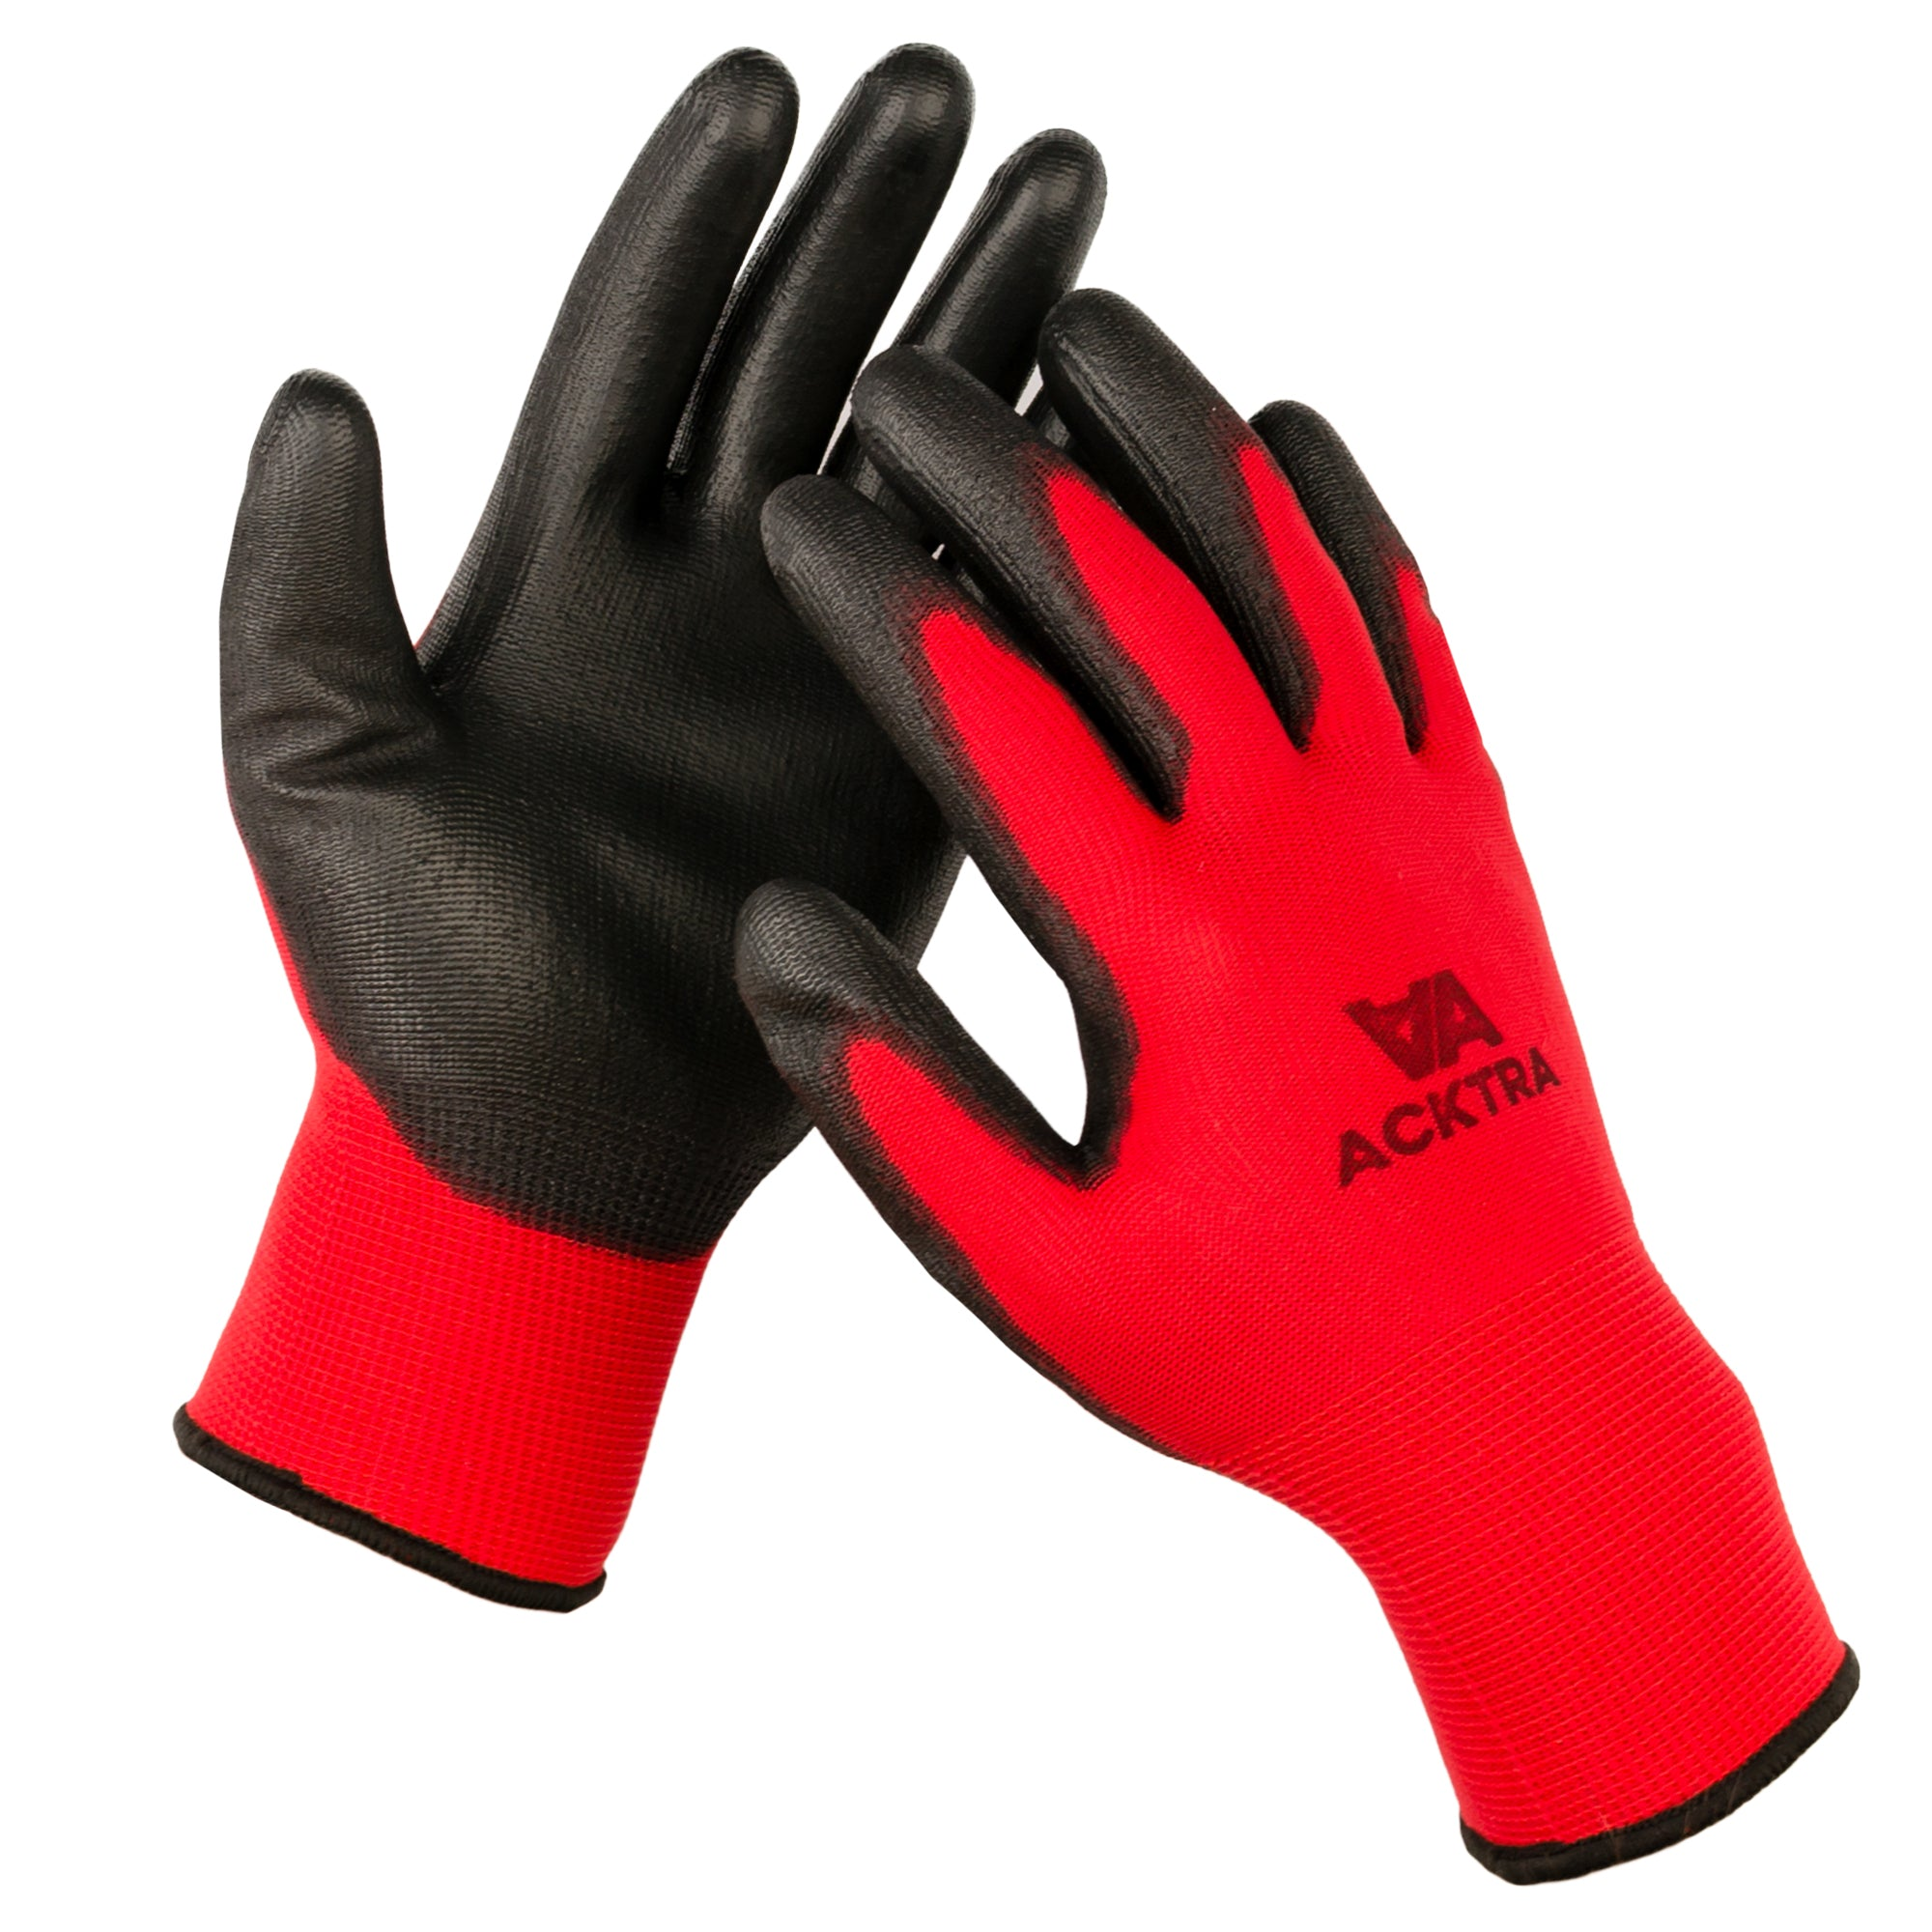 Black Nylon Pu Coated Work Gloves Precision